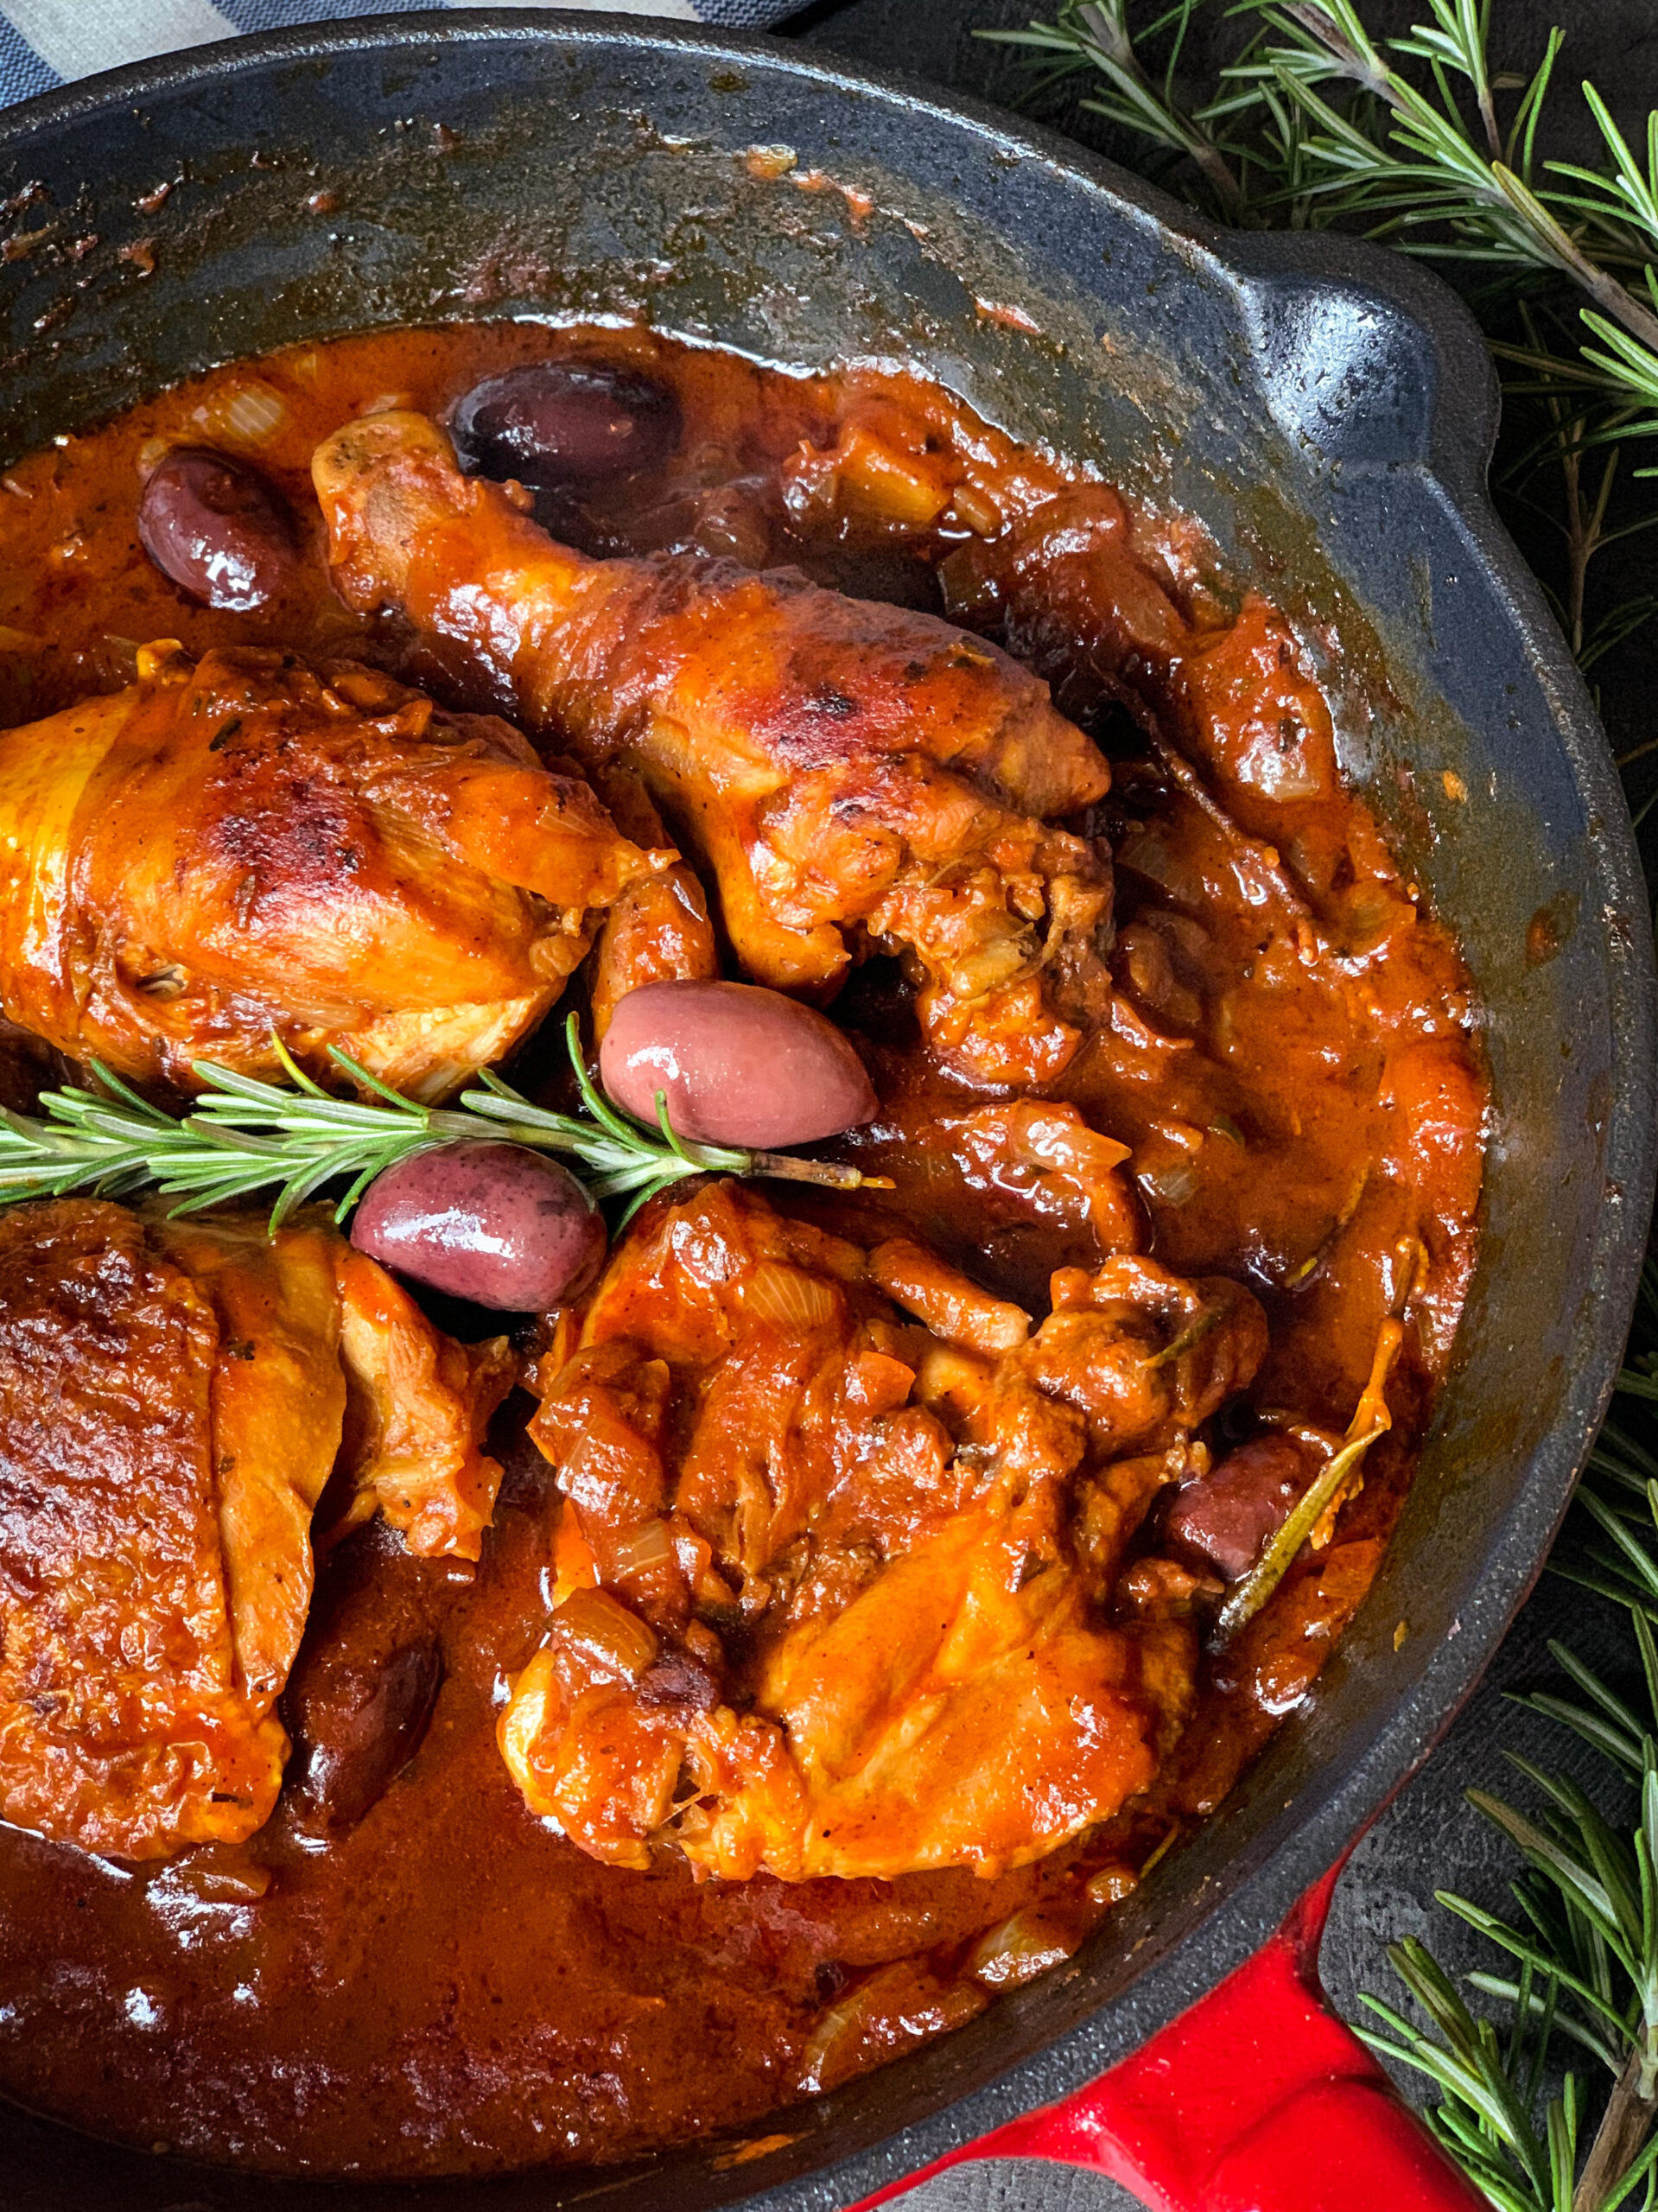 Picture of Mediterranean chicken in Dalmatian sauce with wine, tomato, rosemary, cloves and olives